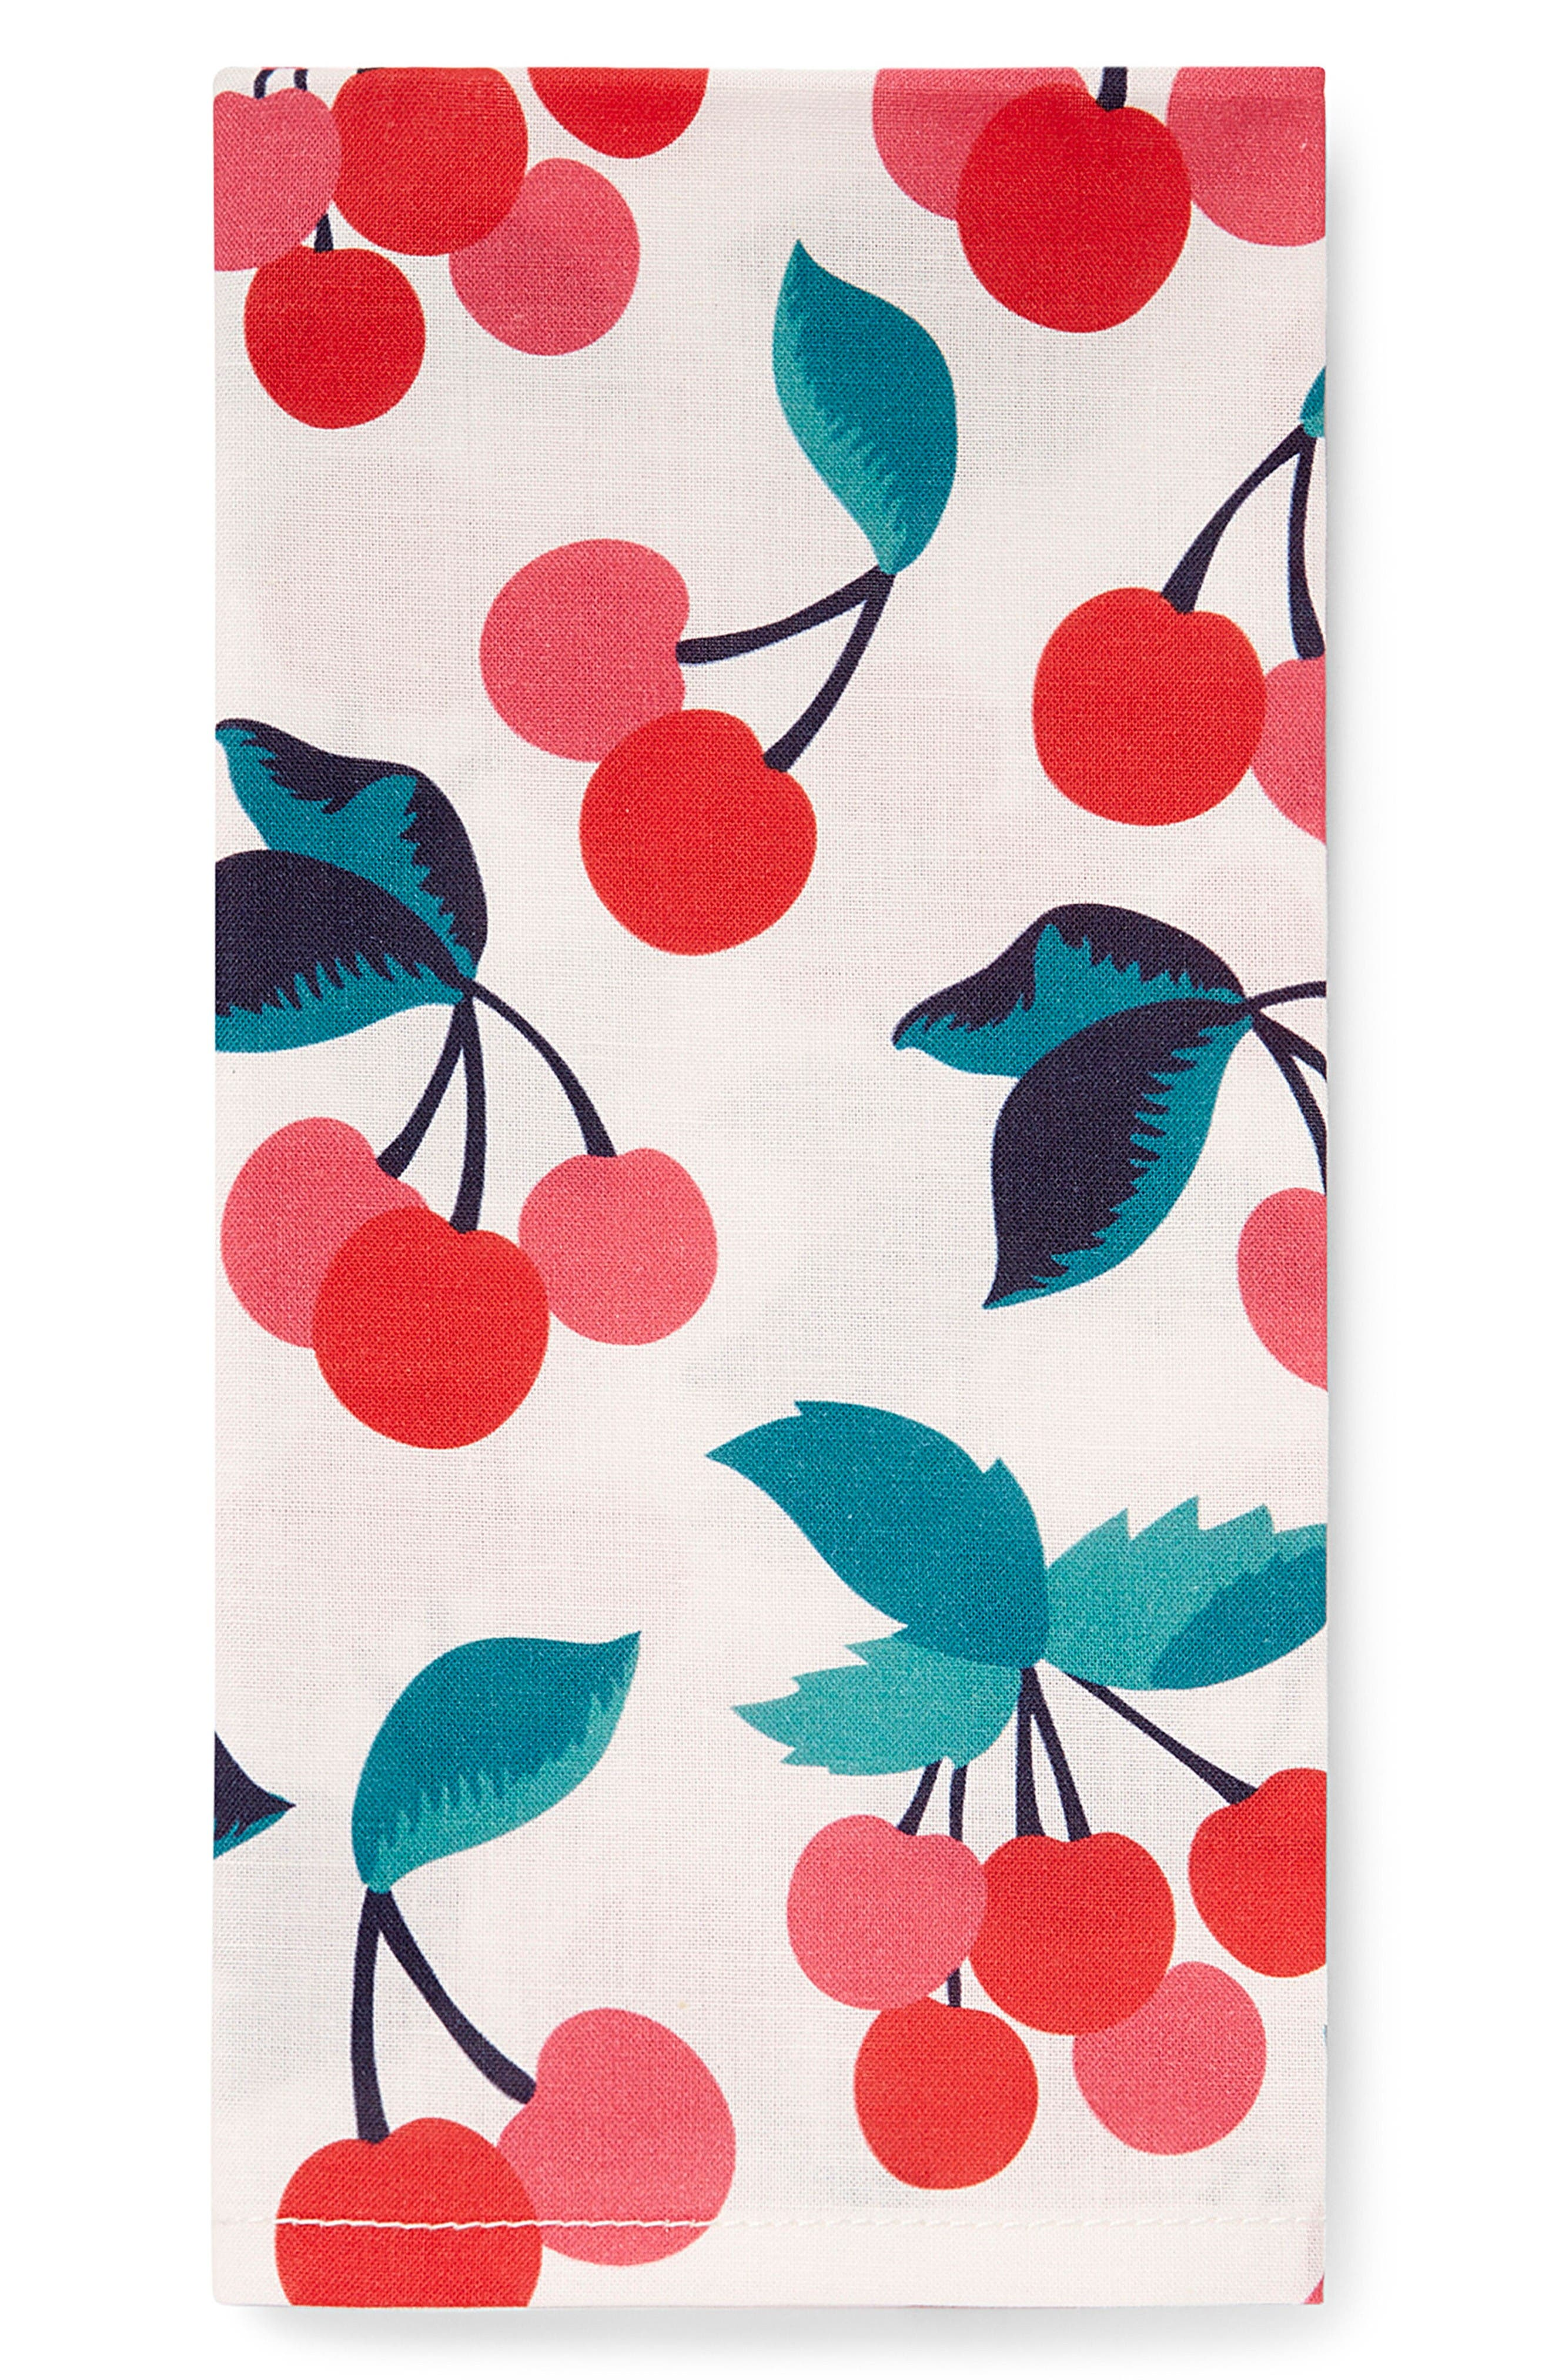 Alternate Image 1 Selected - Draper James Set of 4 Cherry Print Cloth Napkins